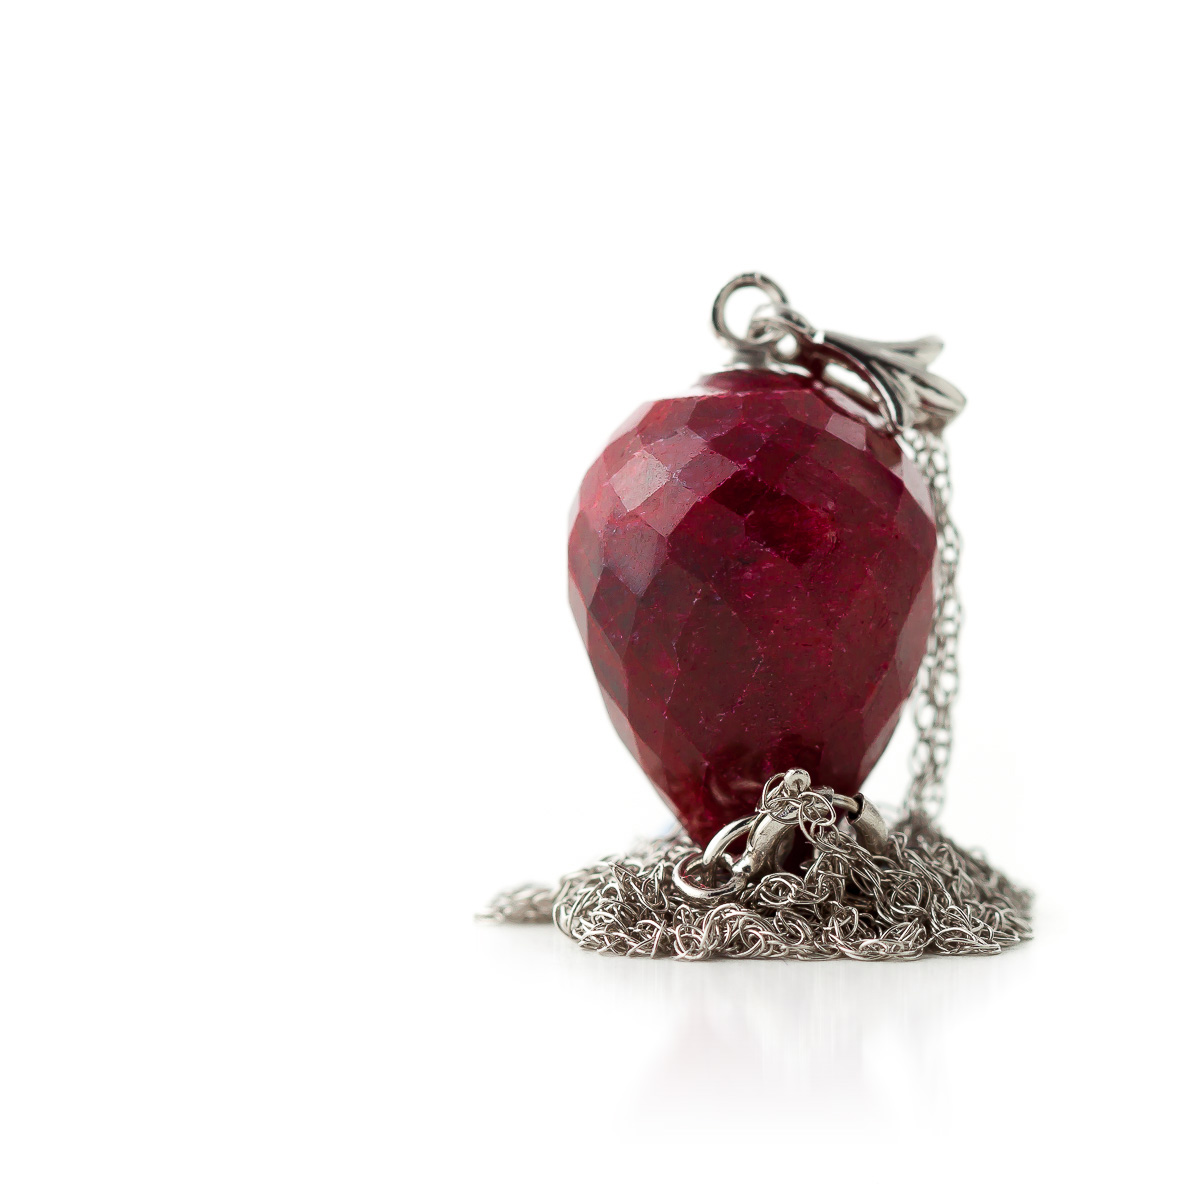 Ruby Briolette Pendant Necklace 13.0ct in 9ct White Gold